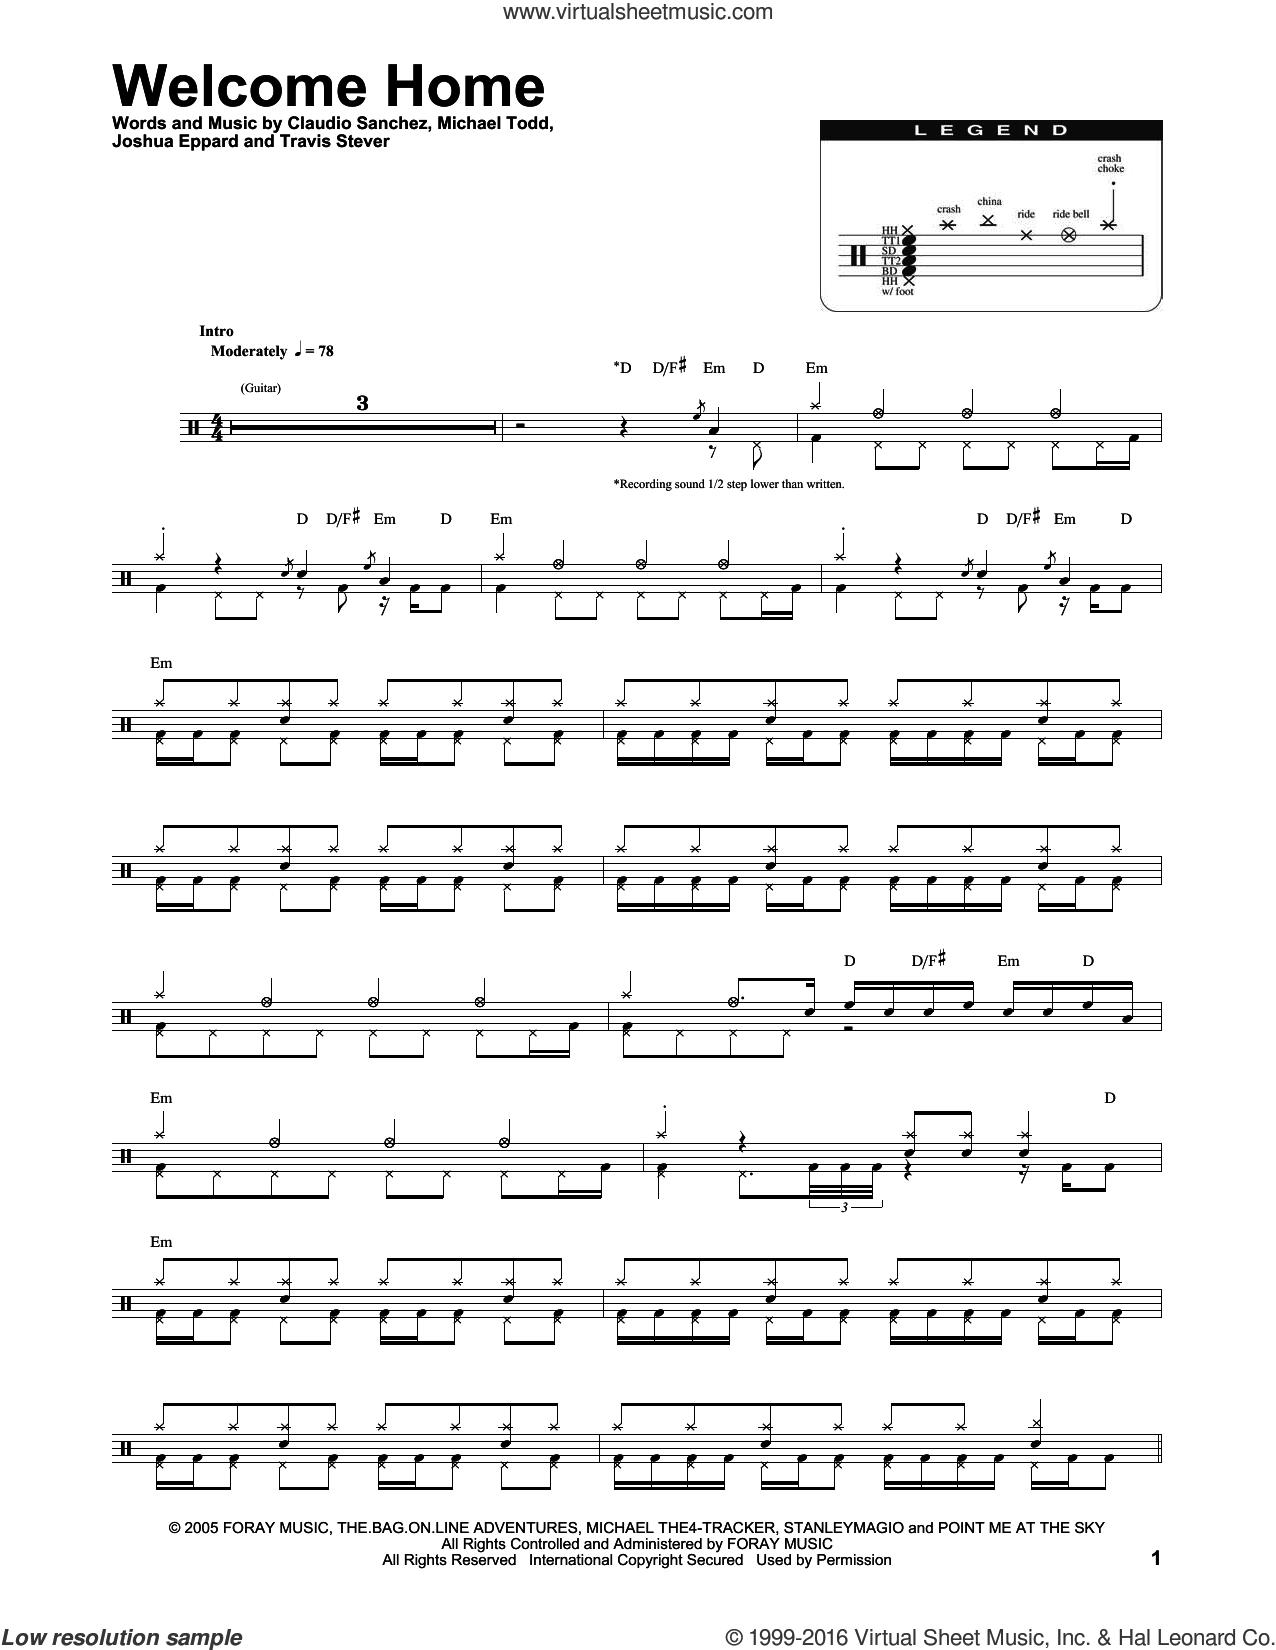 Welcome Home sheet music for drums by Coheed And Cambria, Claudio Sanchez, Joshua Eppard, Michael Todd and Travis Stever, intermediate skill level